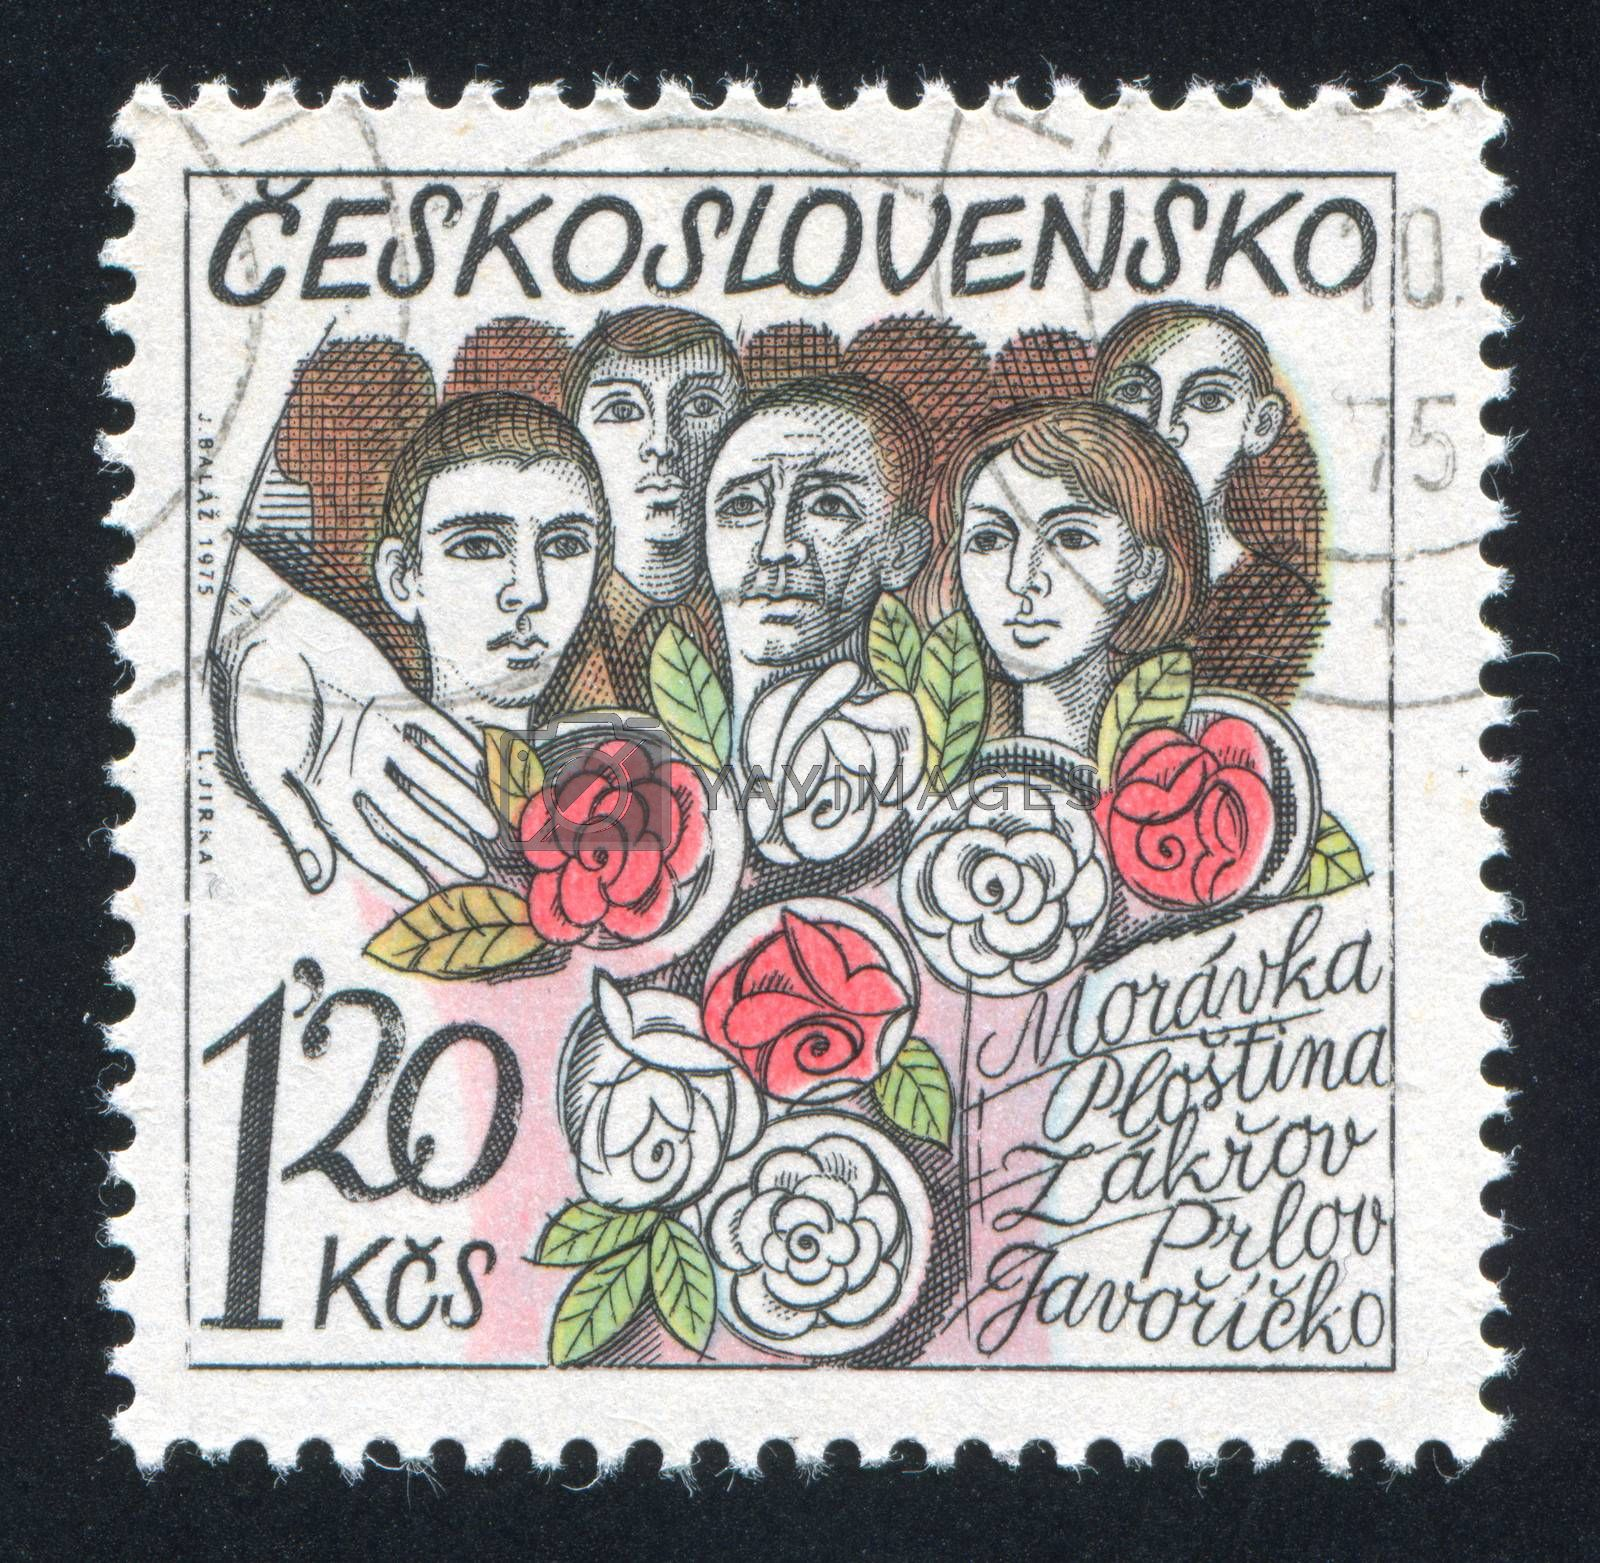 CZECHOSLOVAKIA - CIRCA 1975: stamp printed by Czechoslovakia, shows People and roses, circa 1975